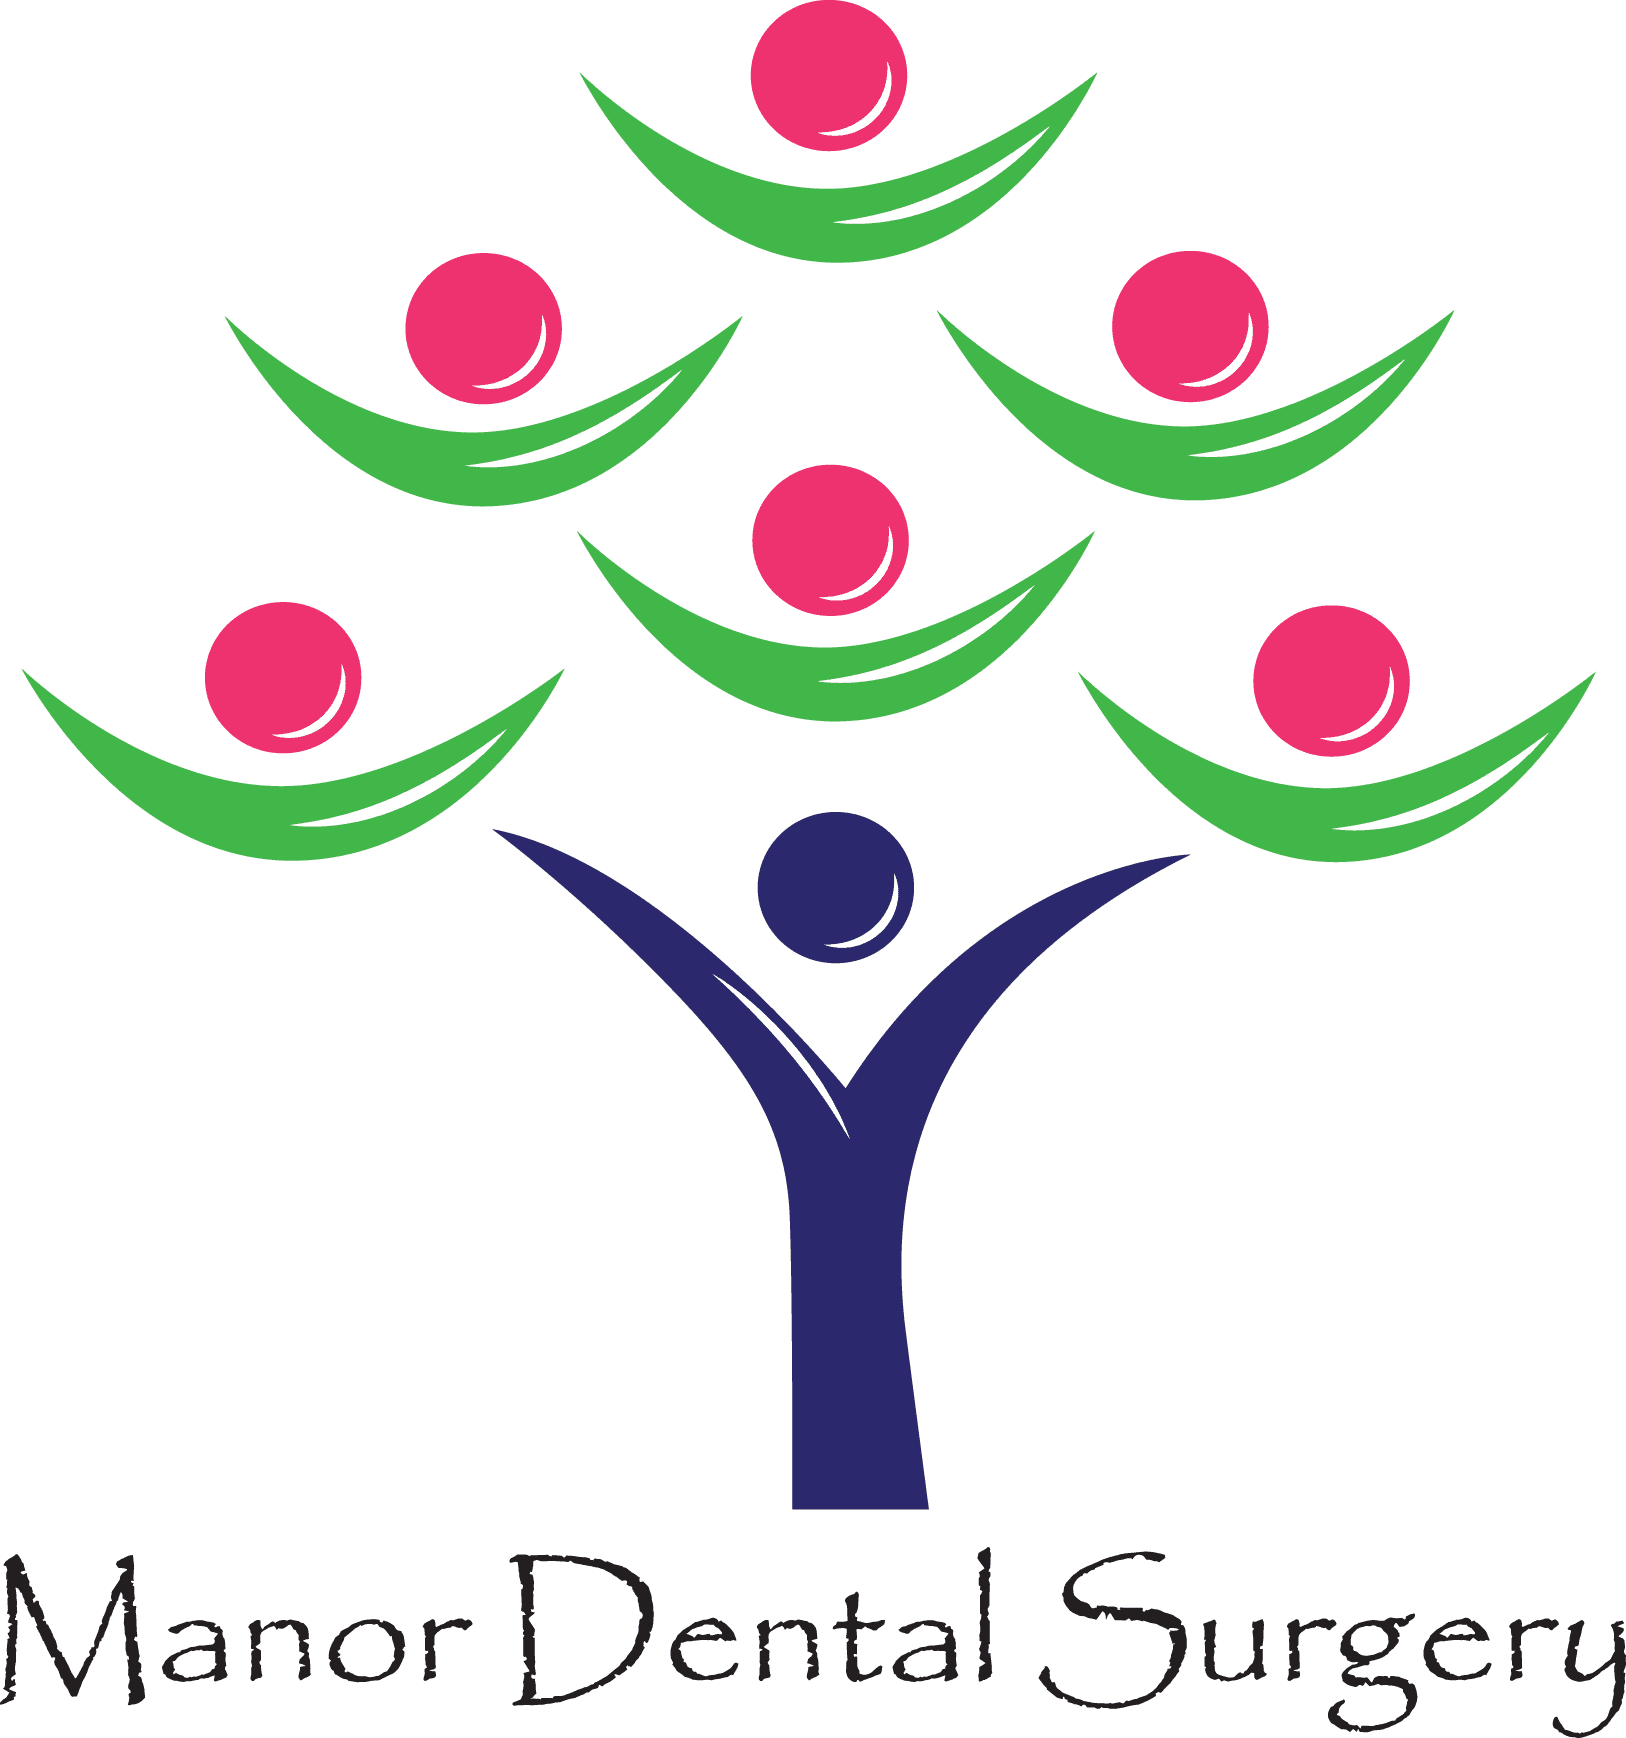 Manor Dental Surgery logo